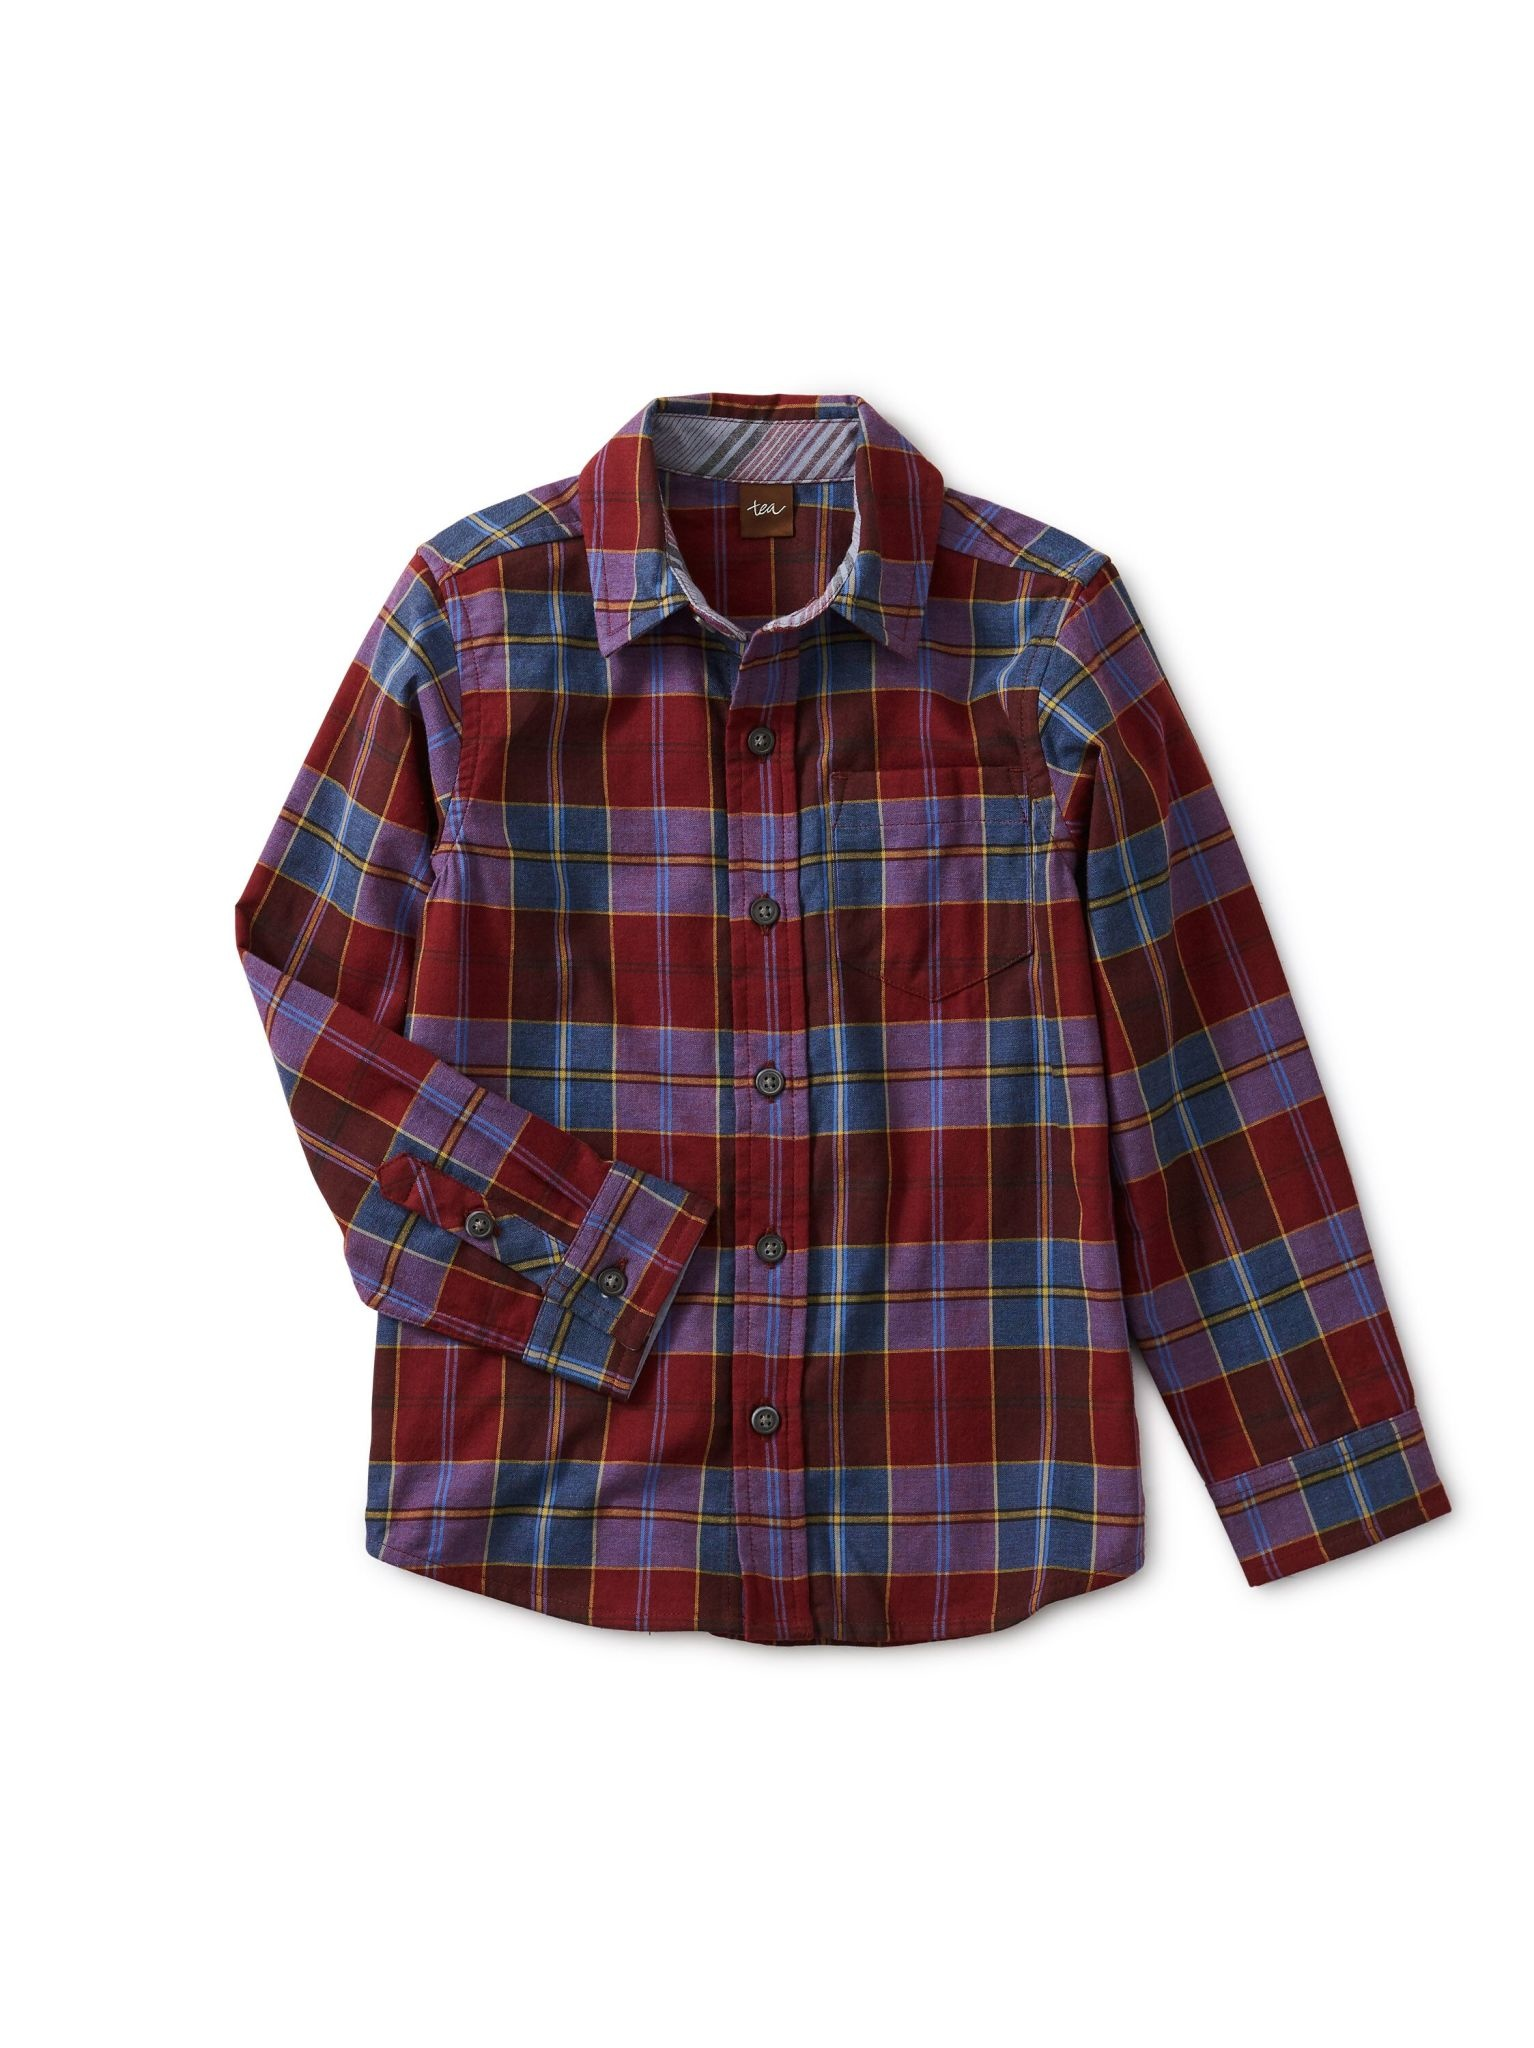 Tea Collection Family Plaid Button Up Shirt - Family Plaid